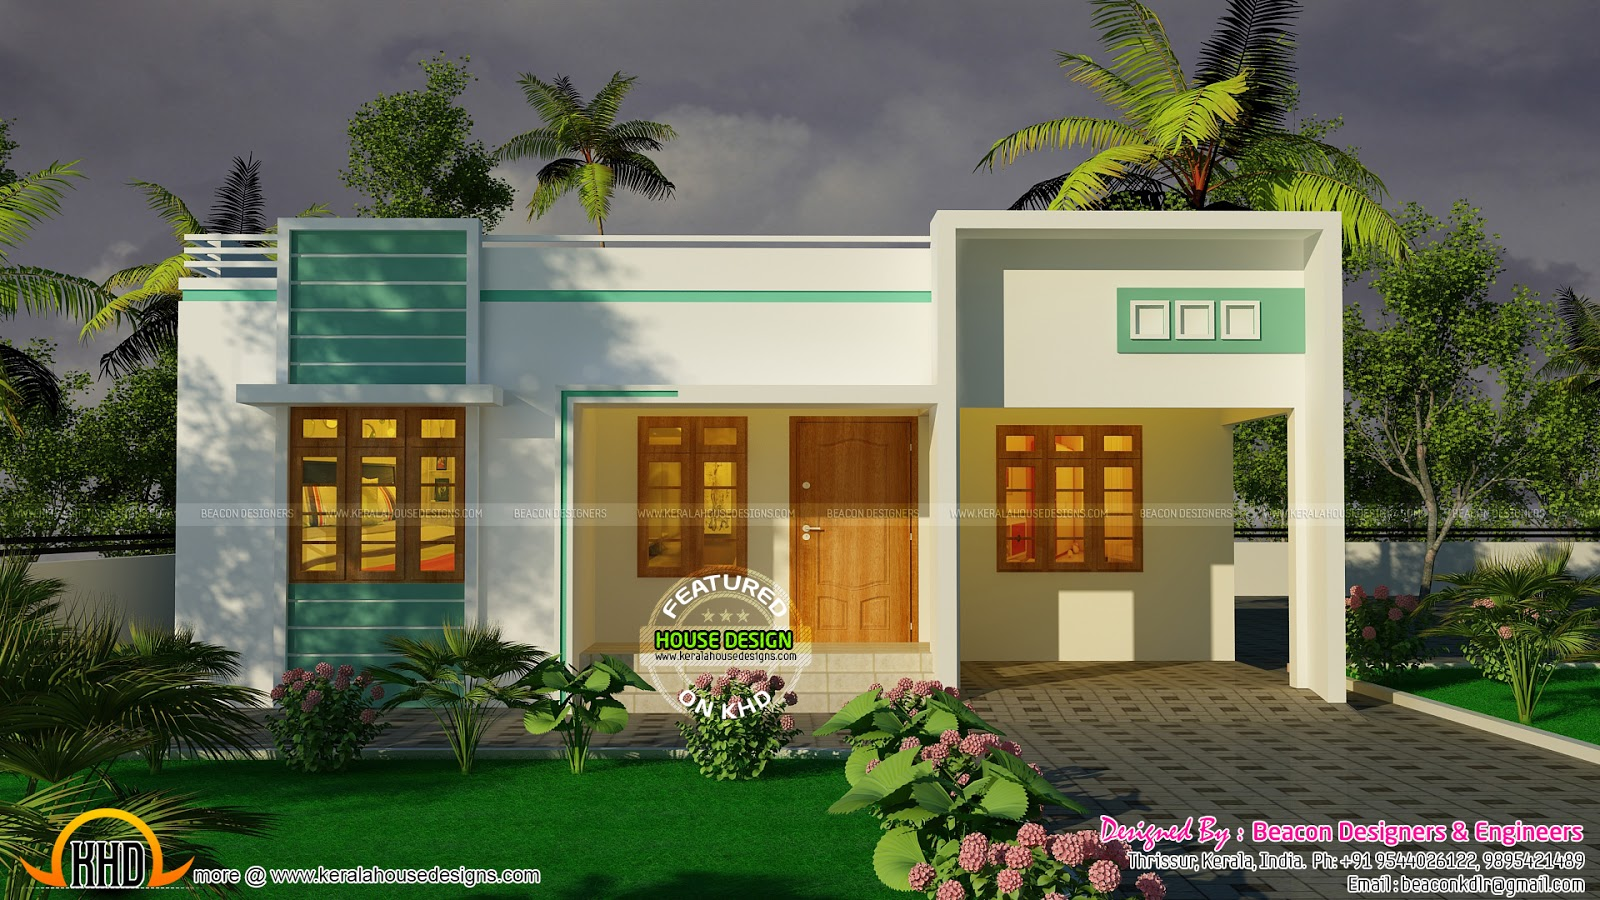 3 Bedroom Small Budget House Plan on Small Single Family House Plans